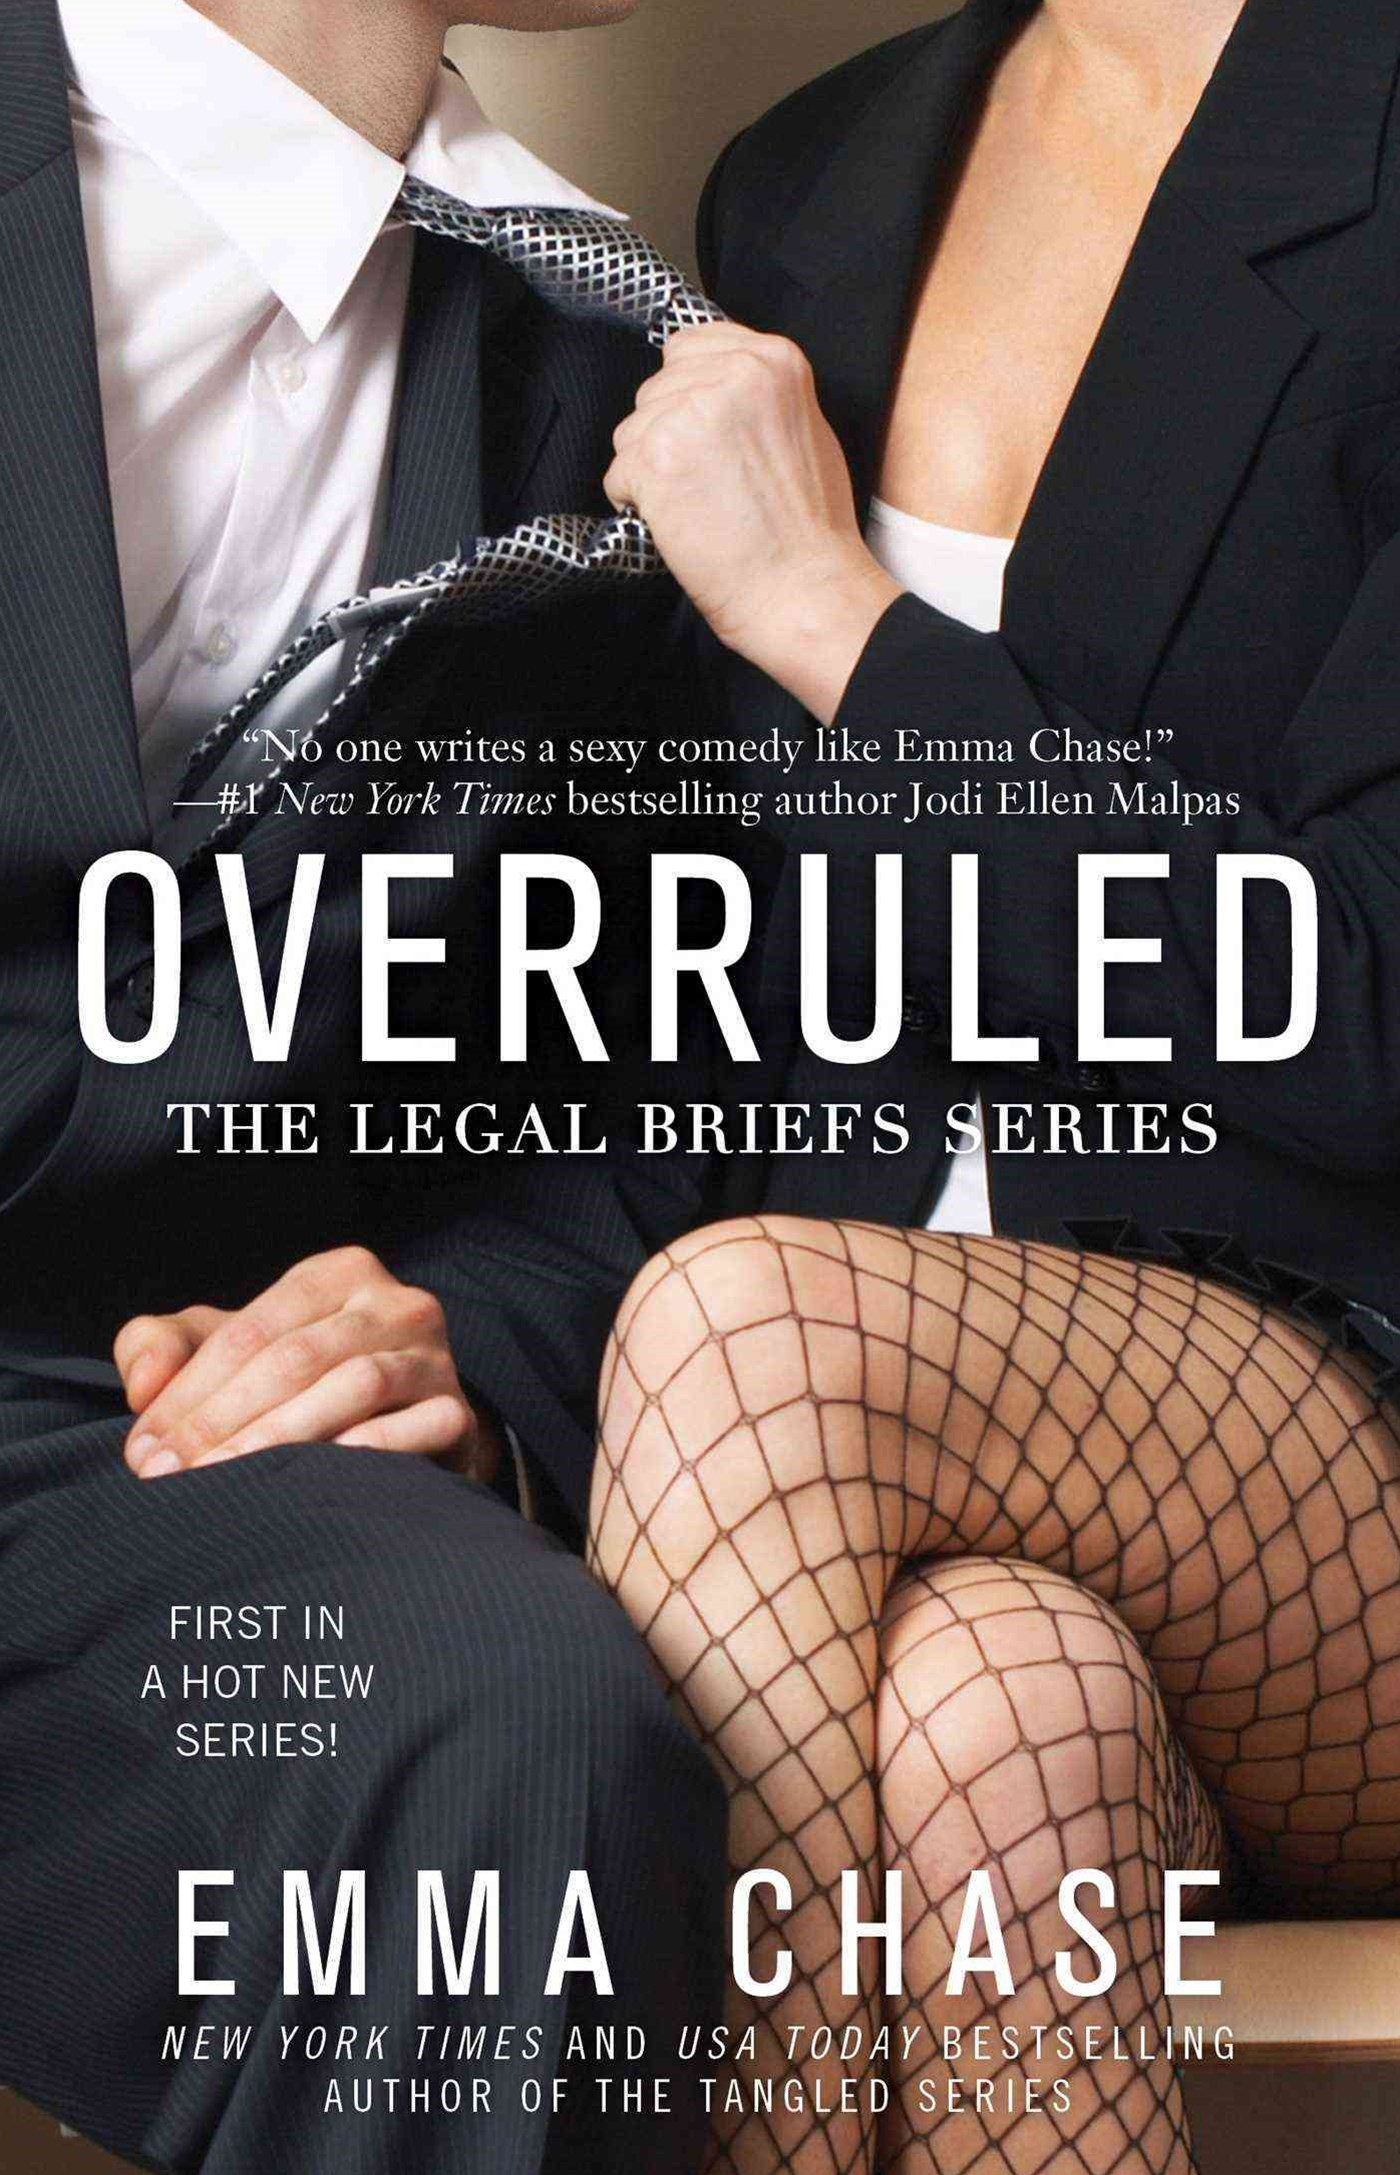 The Legal Briefs Series: Overruled